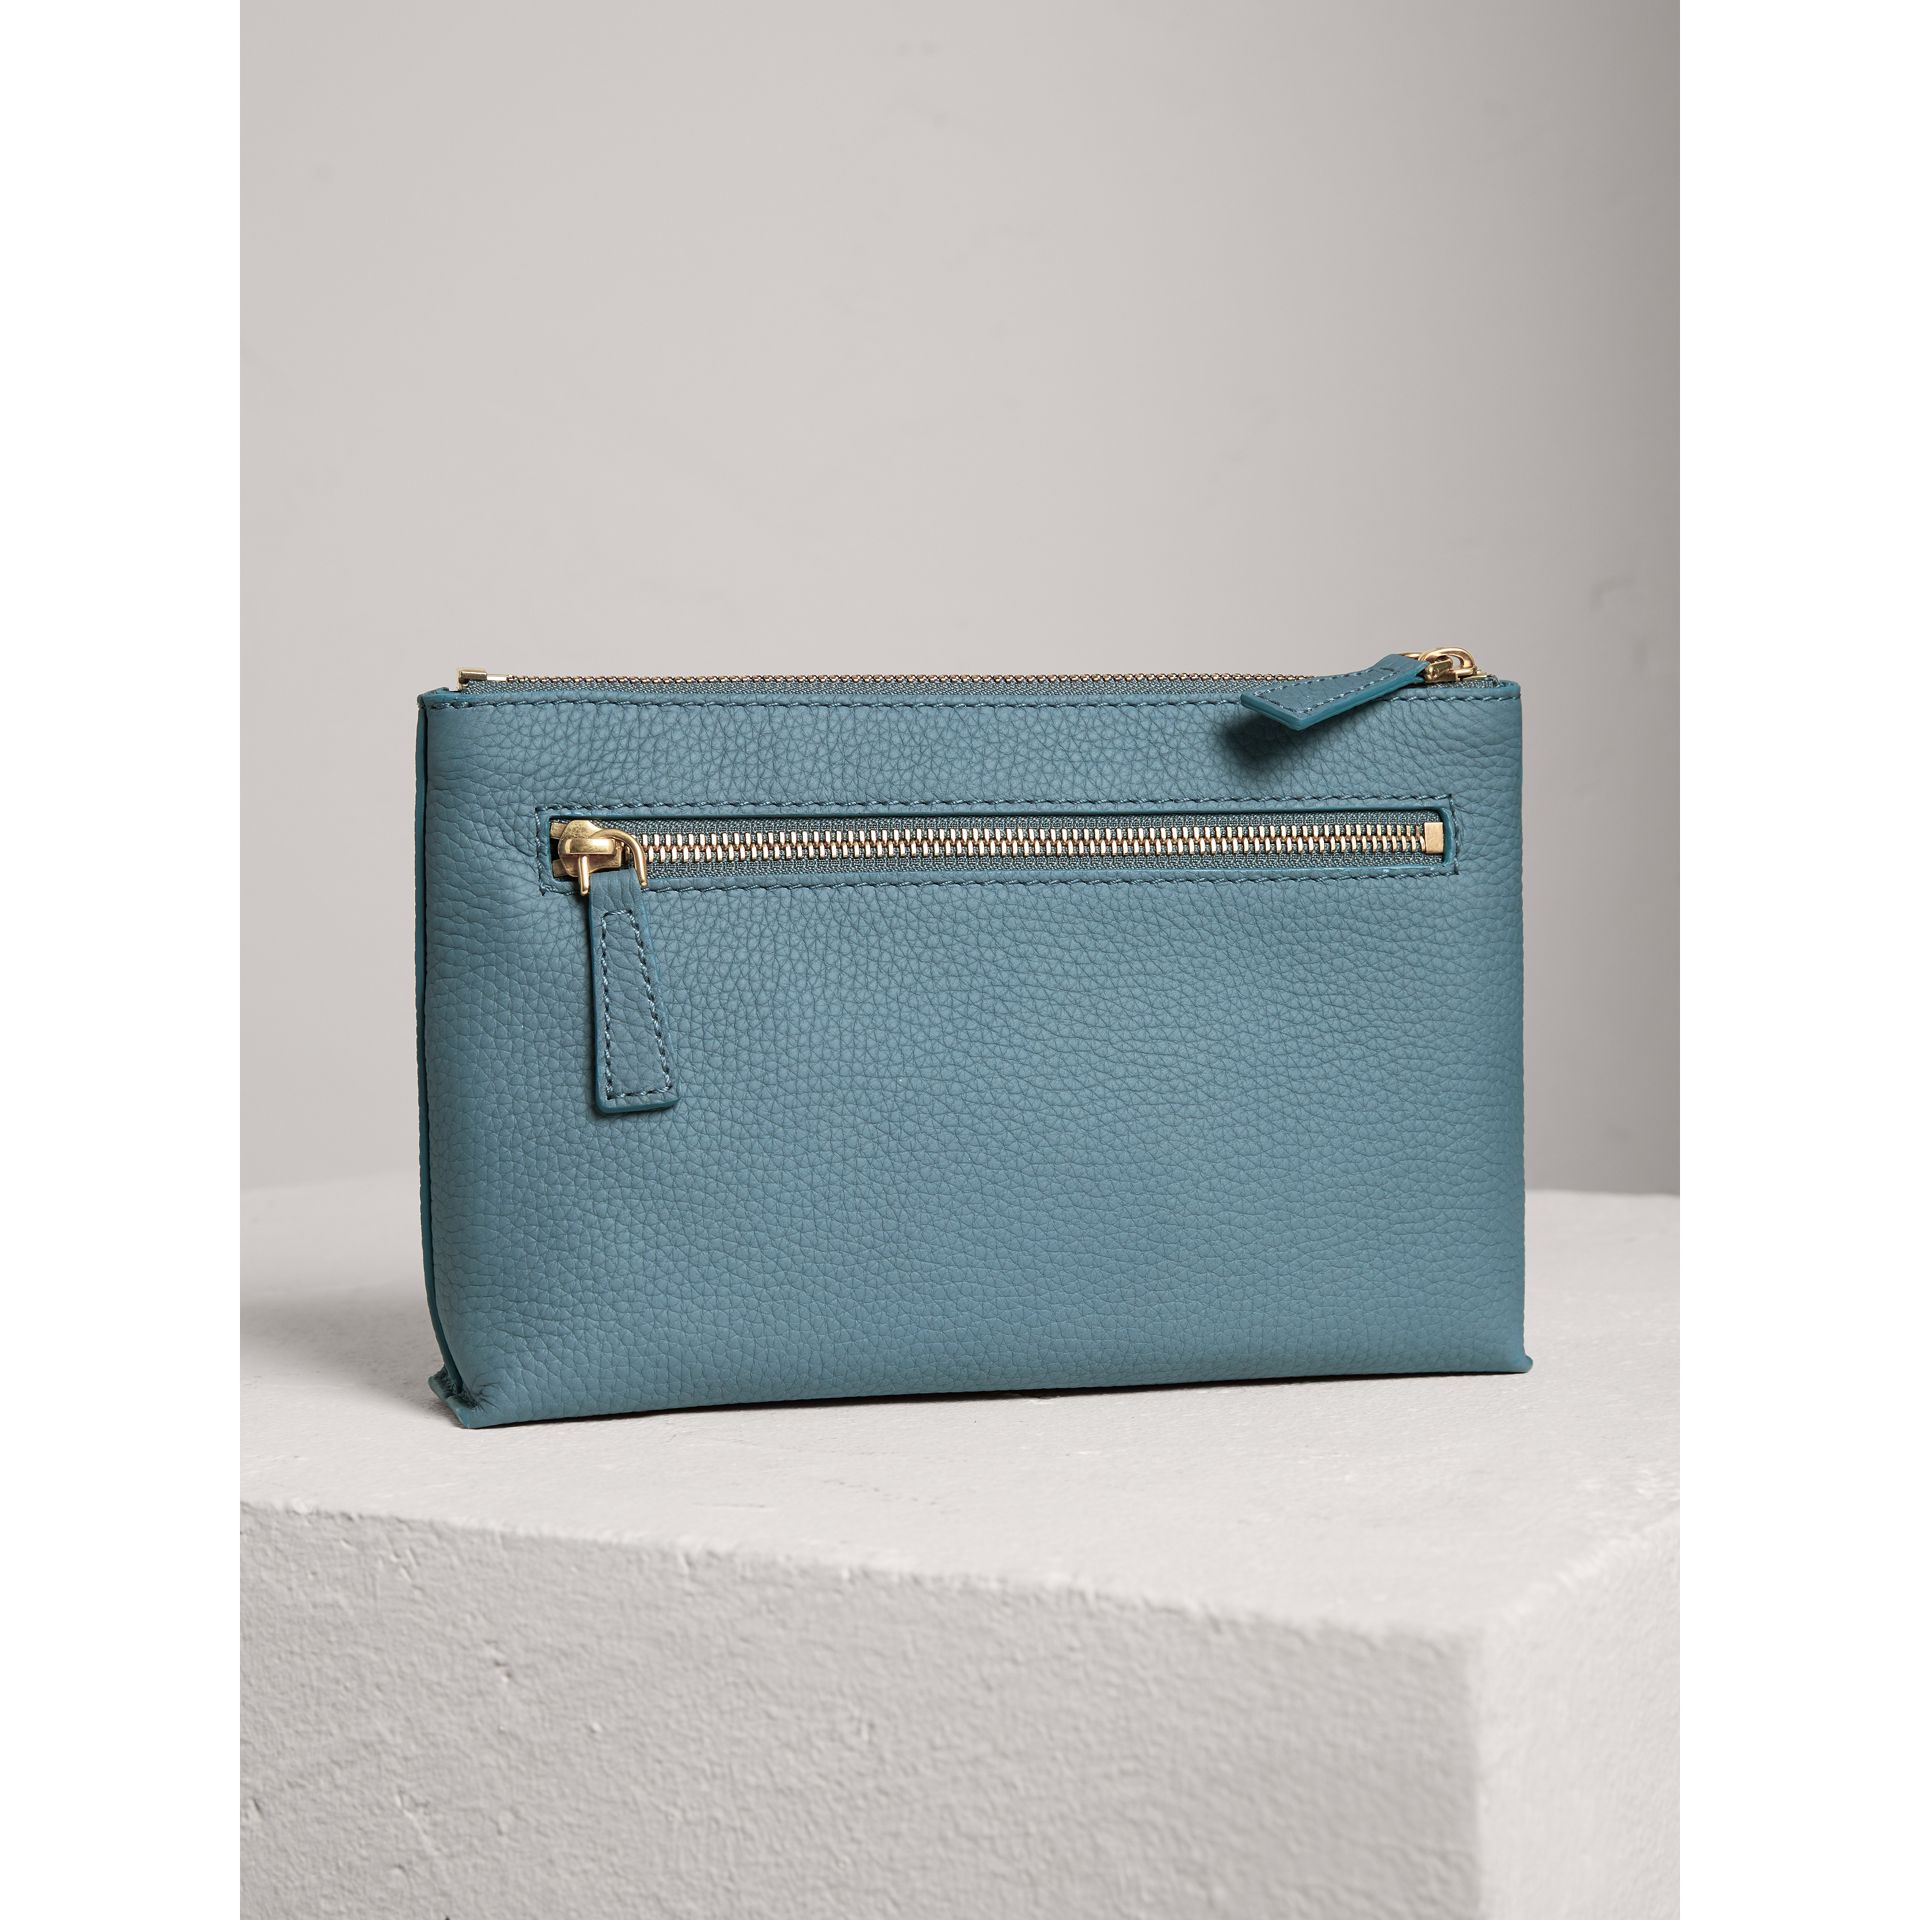 Medium Embossed Leather Zip Pouch in Dusty Teal Blue | Burberry - gallery image 2